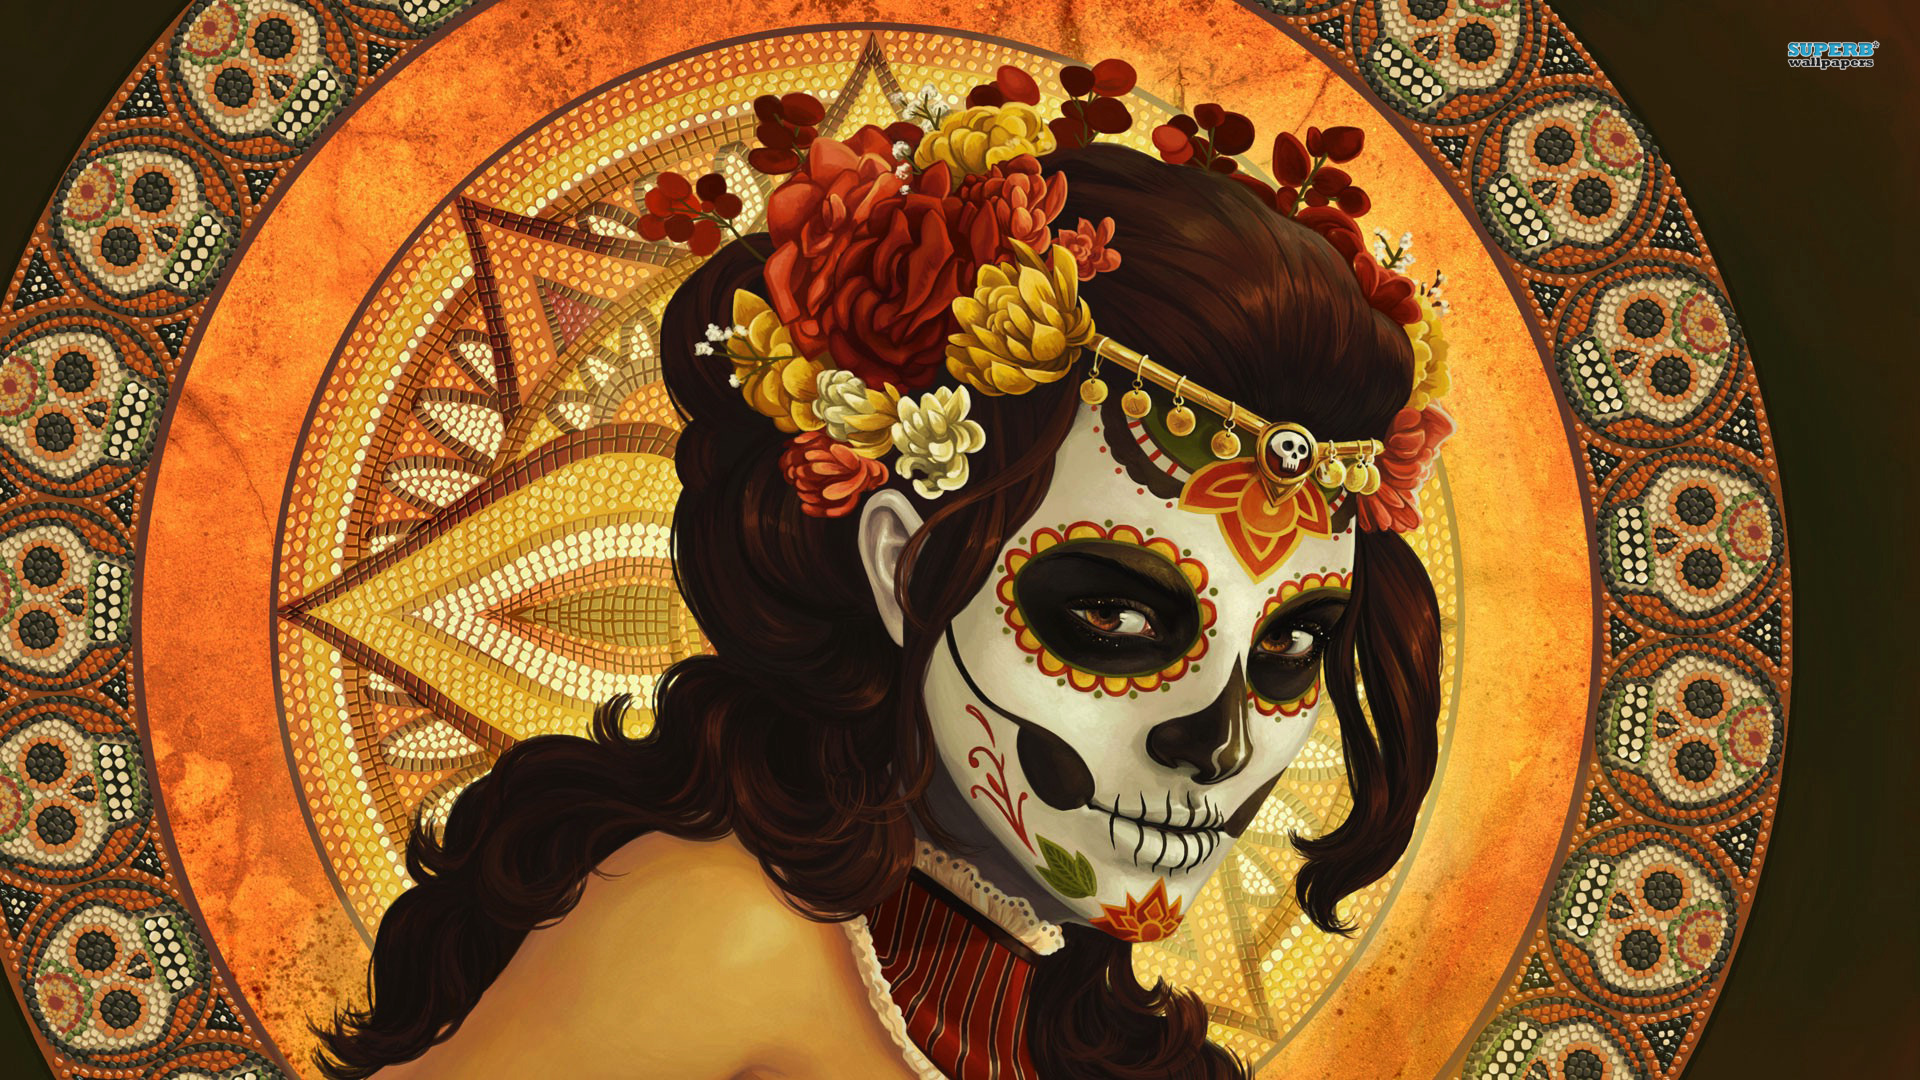 Free Download Day Of The Dead Wallpapers Hd 846zk8f 4usky